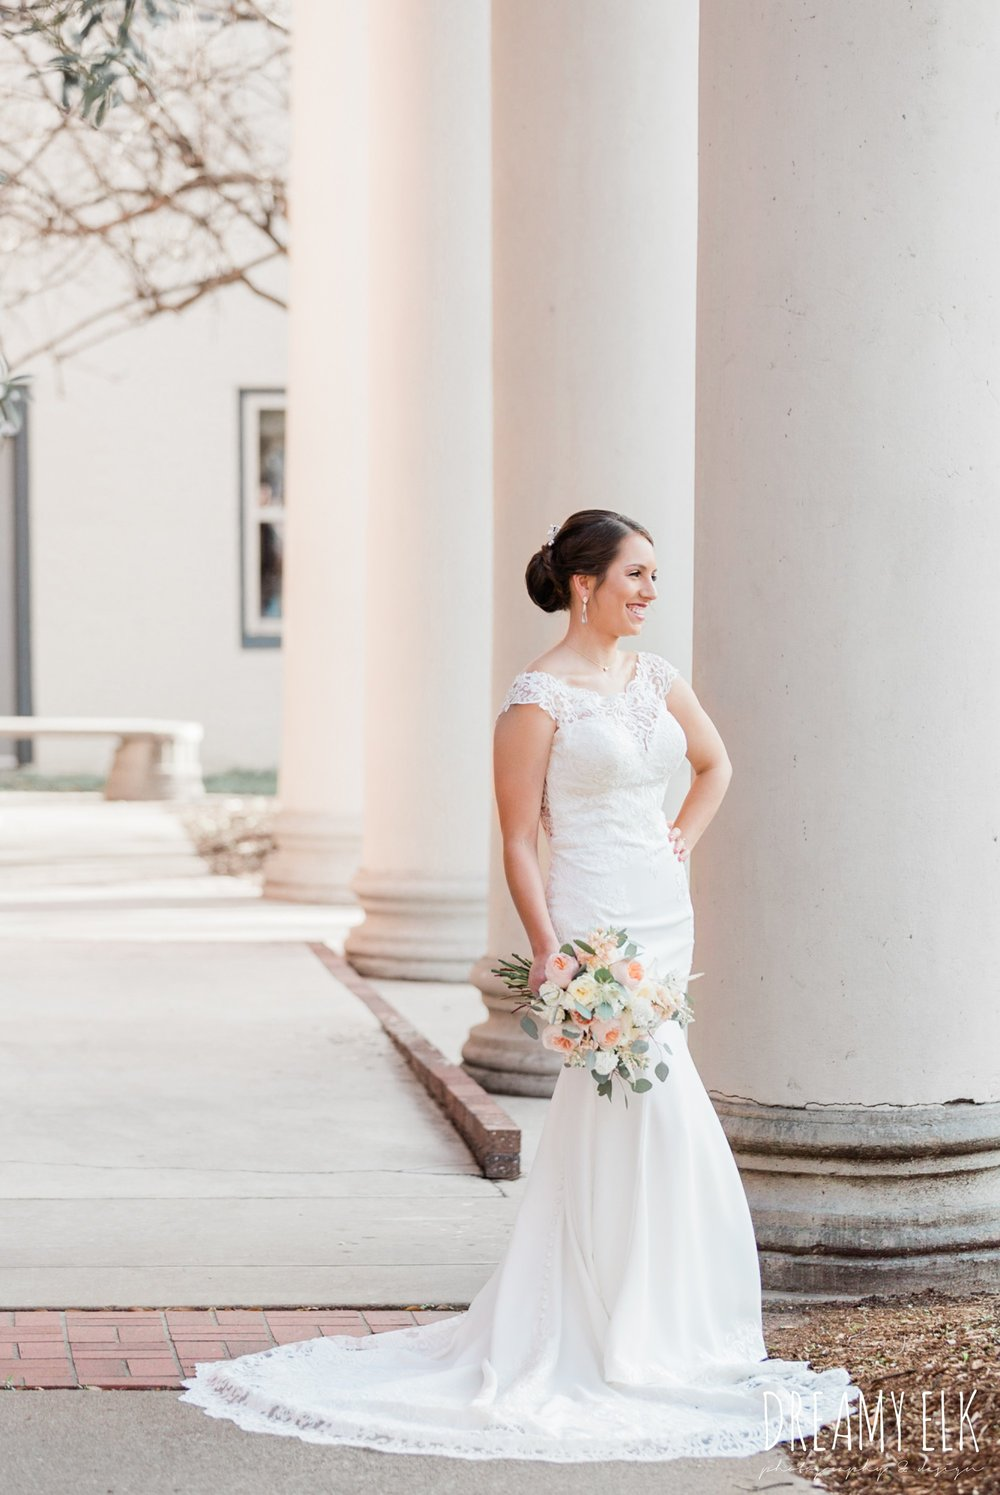 essense of australia column wedding dress downtown bryan texas, outdoor spring bridal photo, dreamy elk photography and design